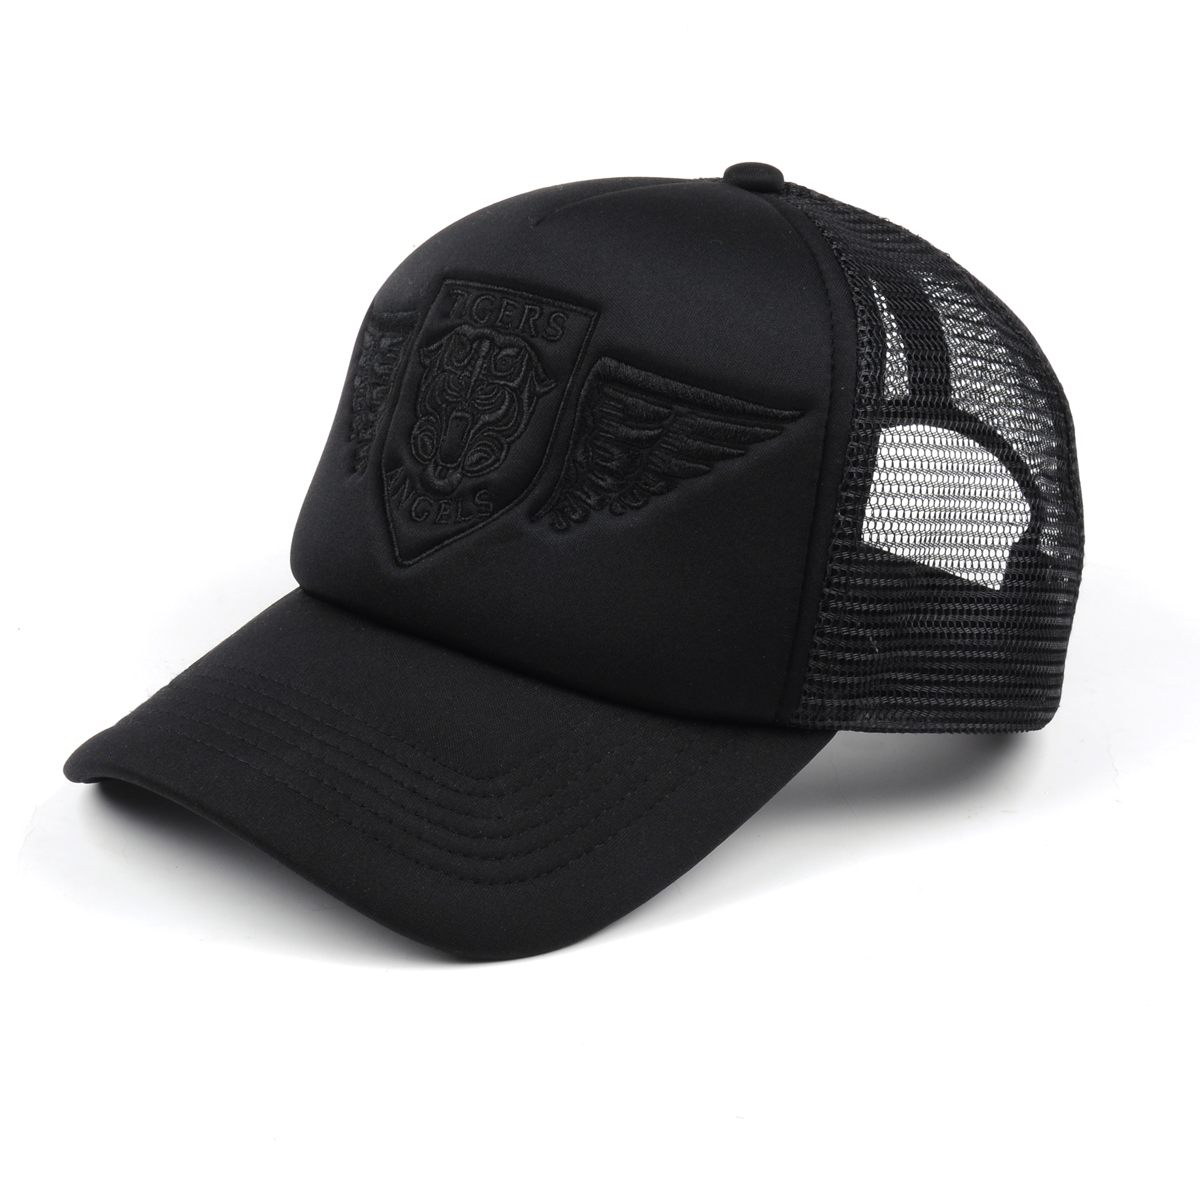 Tiger Wings Black Trucker Hat With Black Embroidery